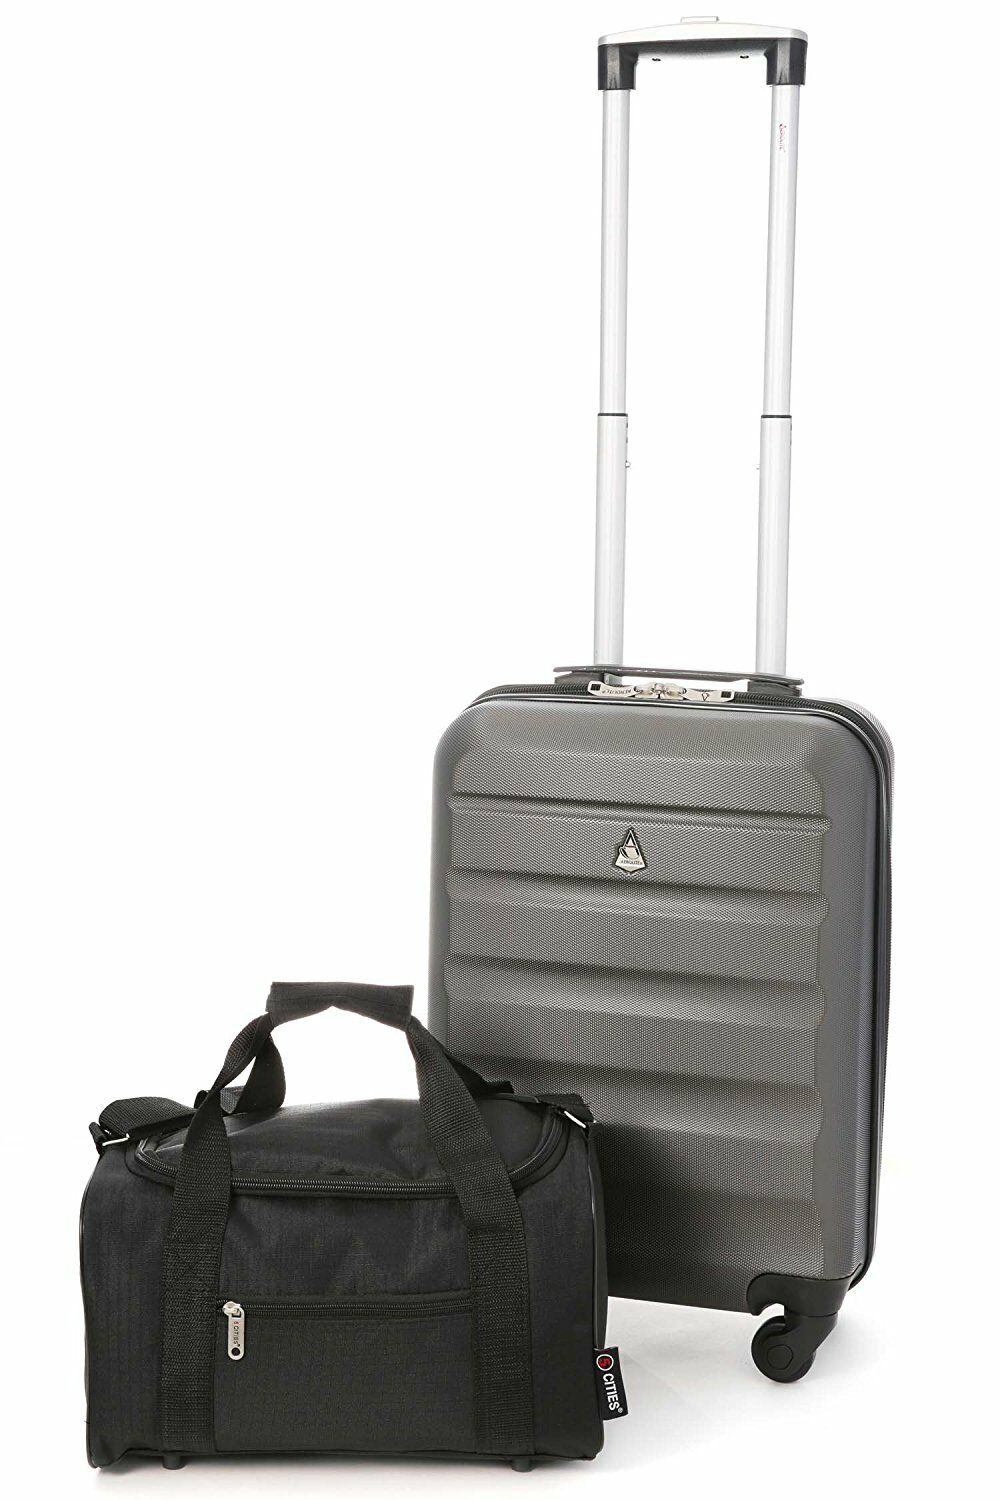 d4099f86f3573 Details about Aerolite Hard Shell Lightweight Hand Cabin Luggage Suitcase + Ryanair  2nd Bag